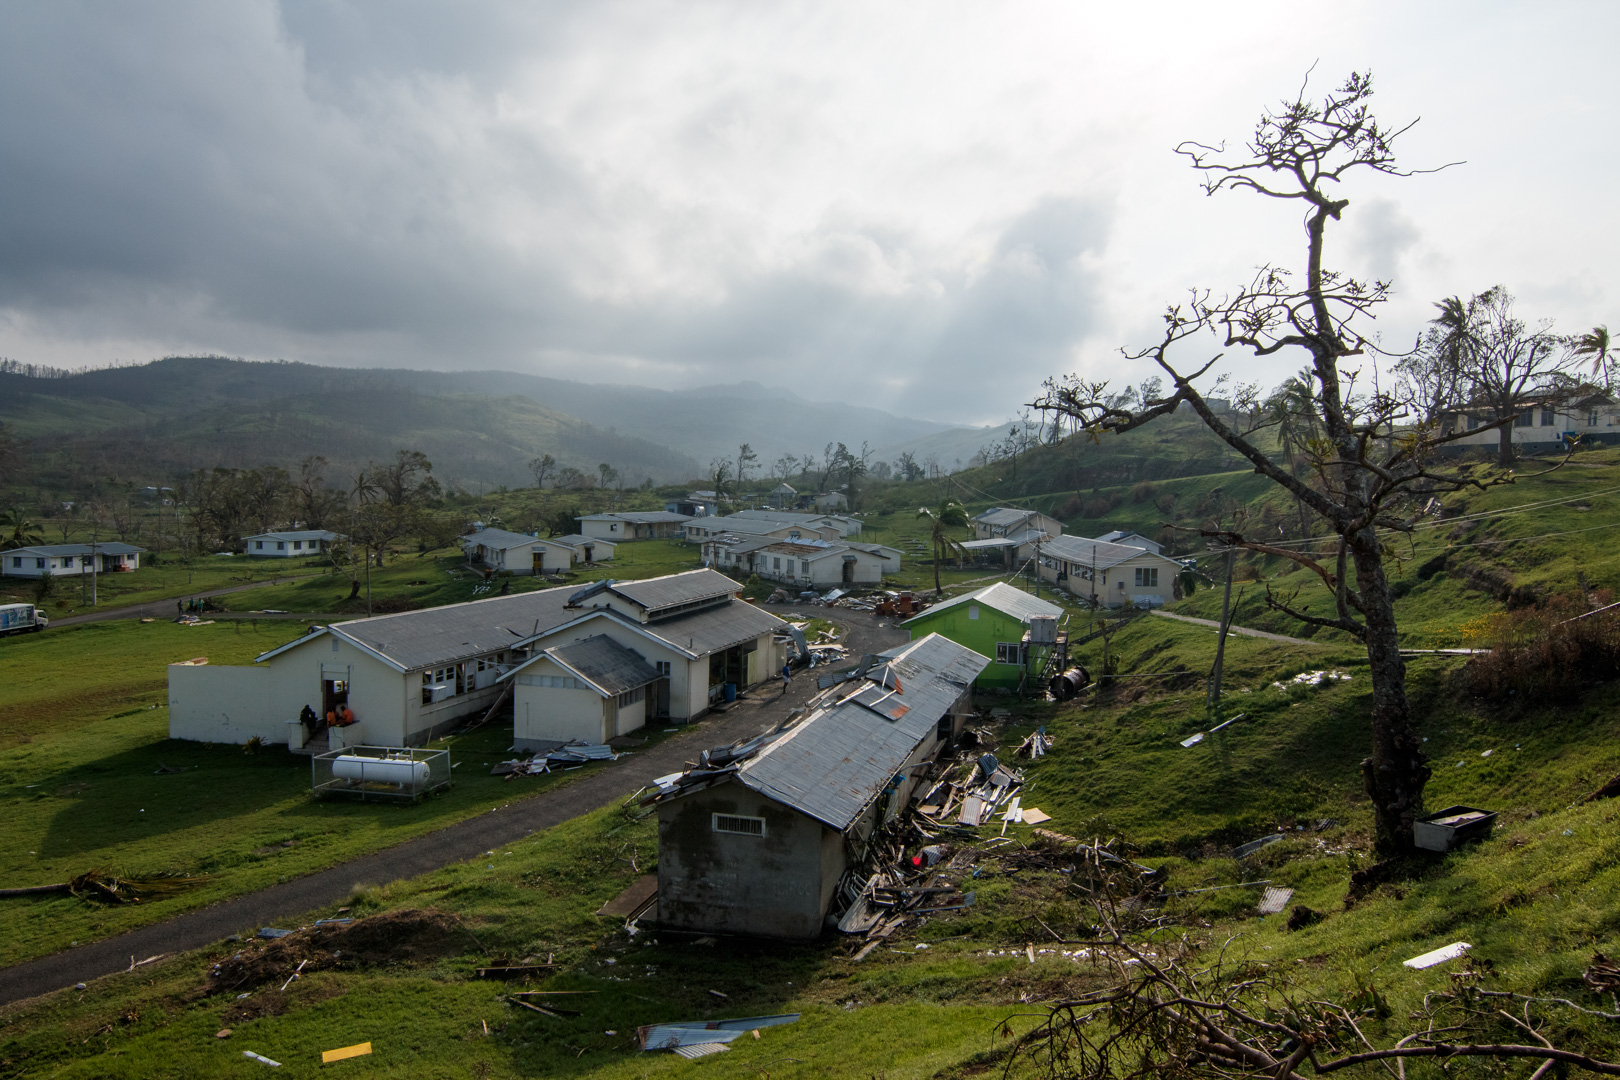 Damage done to the student dormitories of QVS boarding school in Tailevu, Fiji,after Cyclone Winston swept through the area on February 20, 2016.